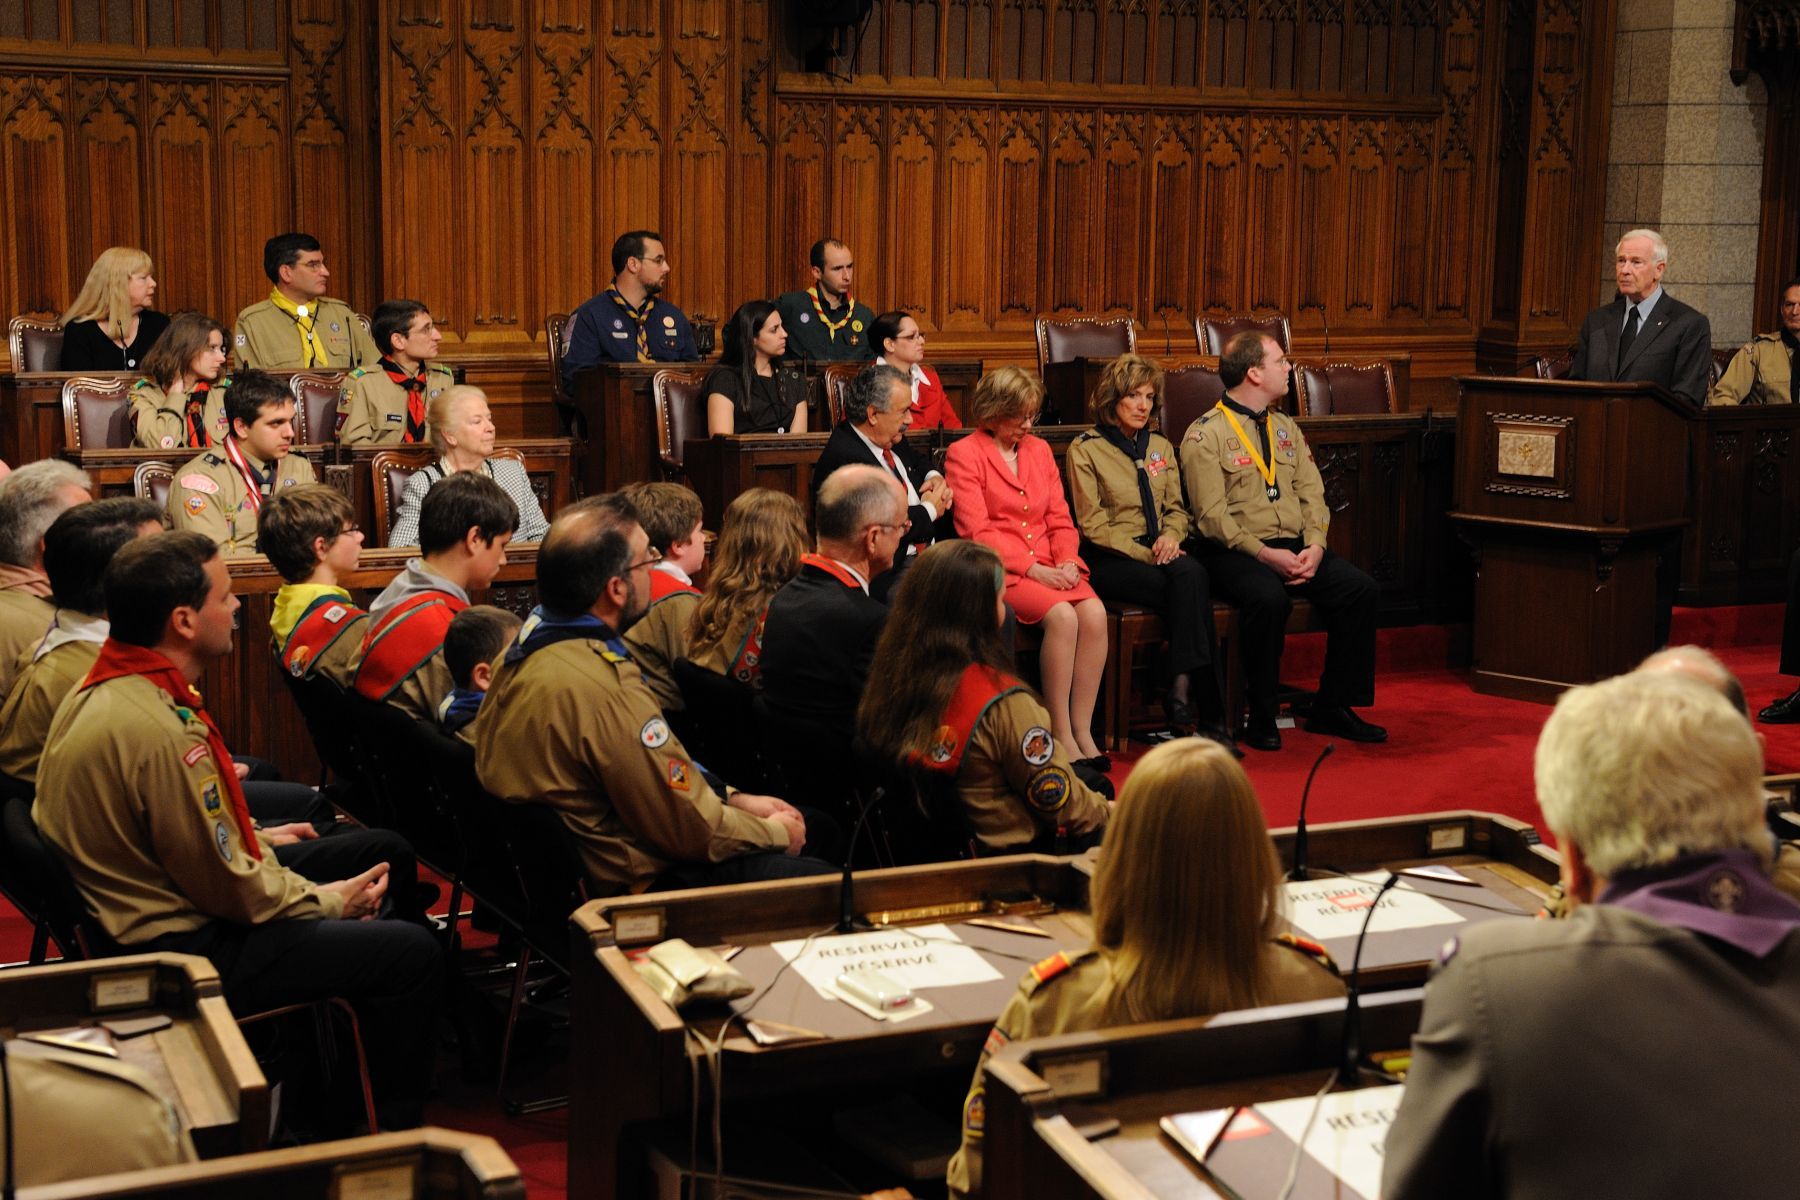 The event took place in the Senate Chamber of the Parliament of Canada.